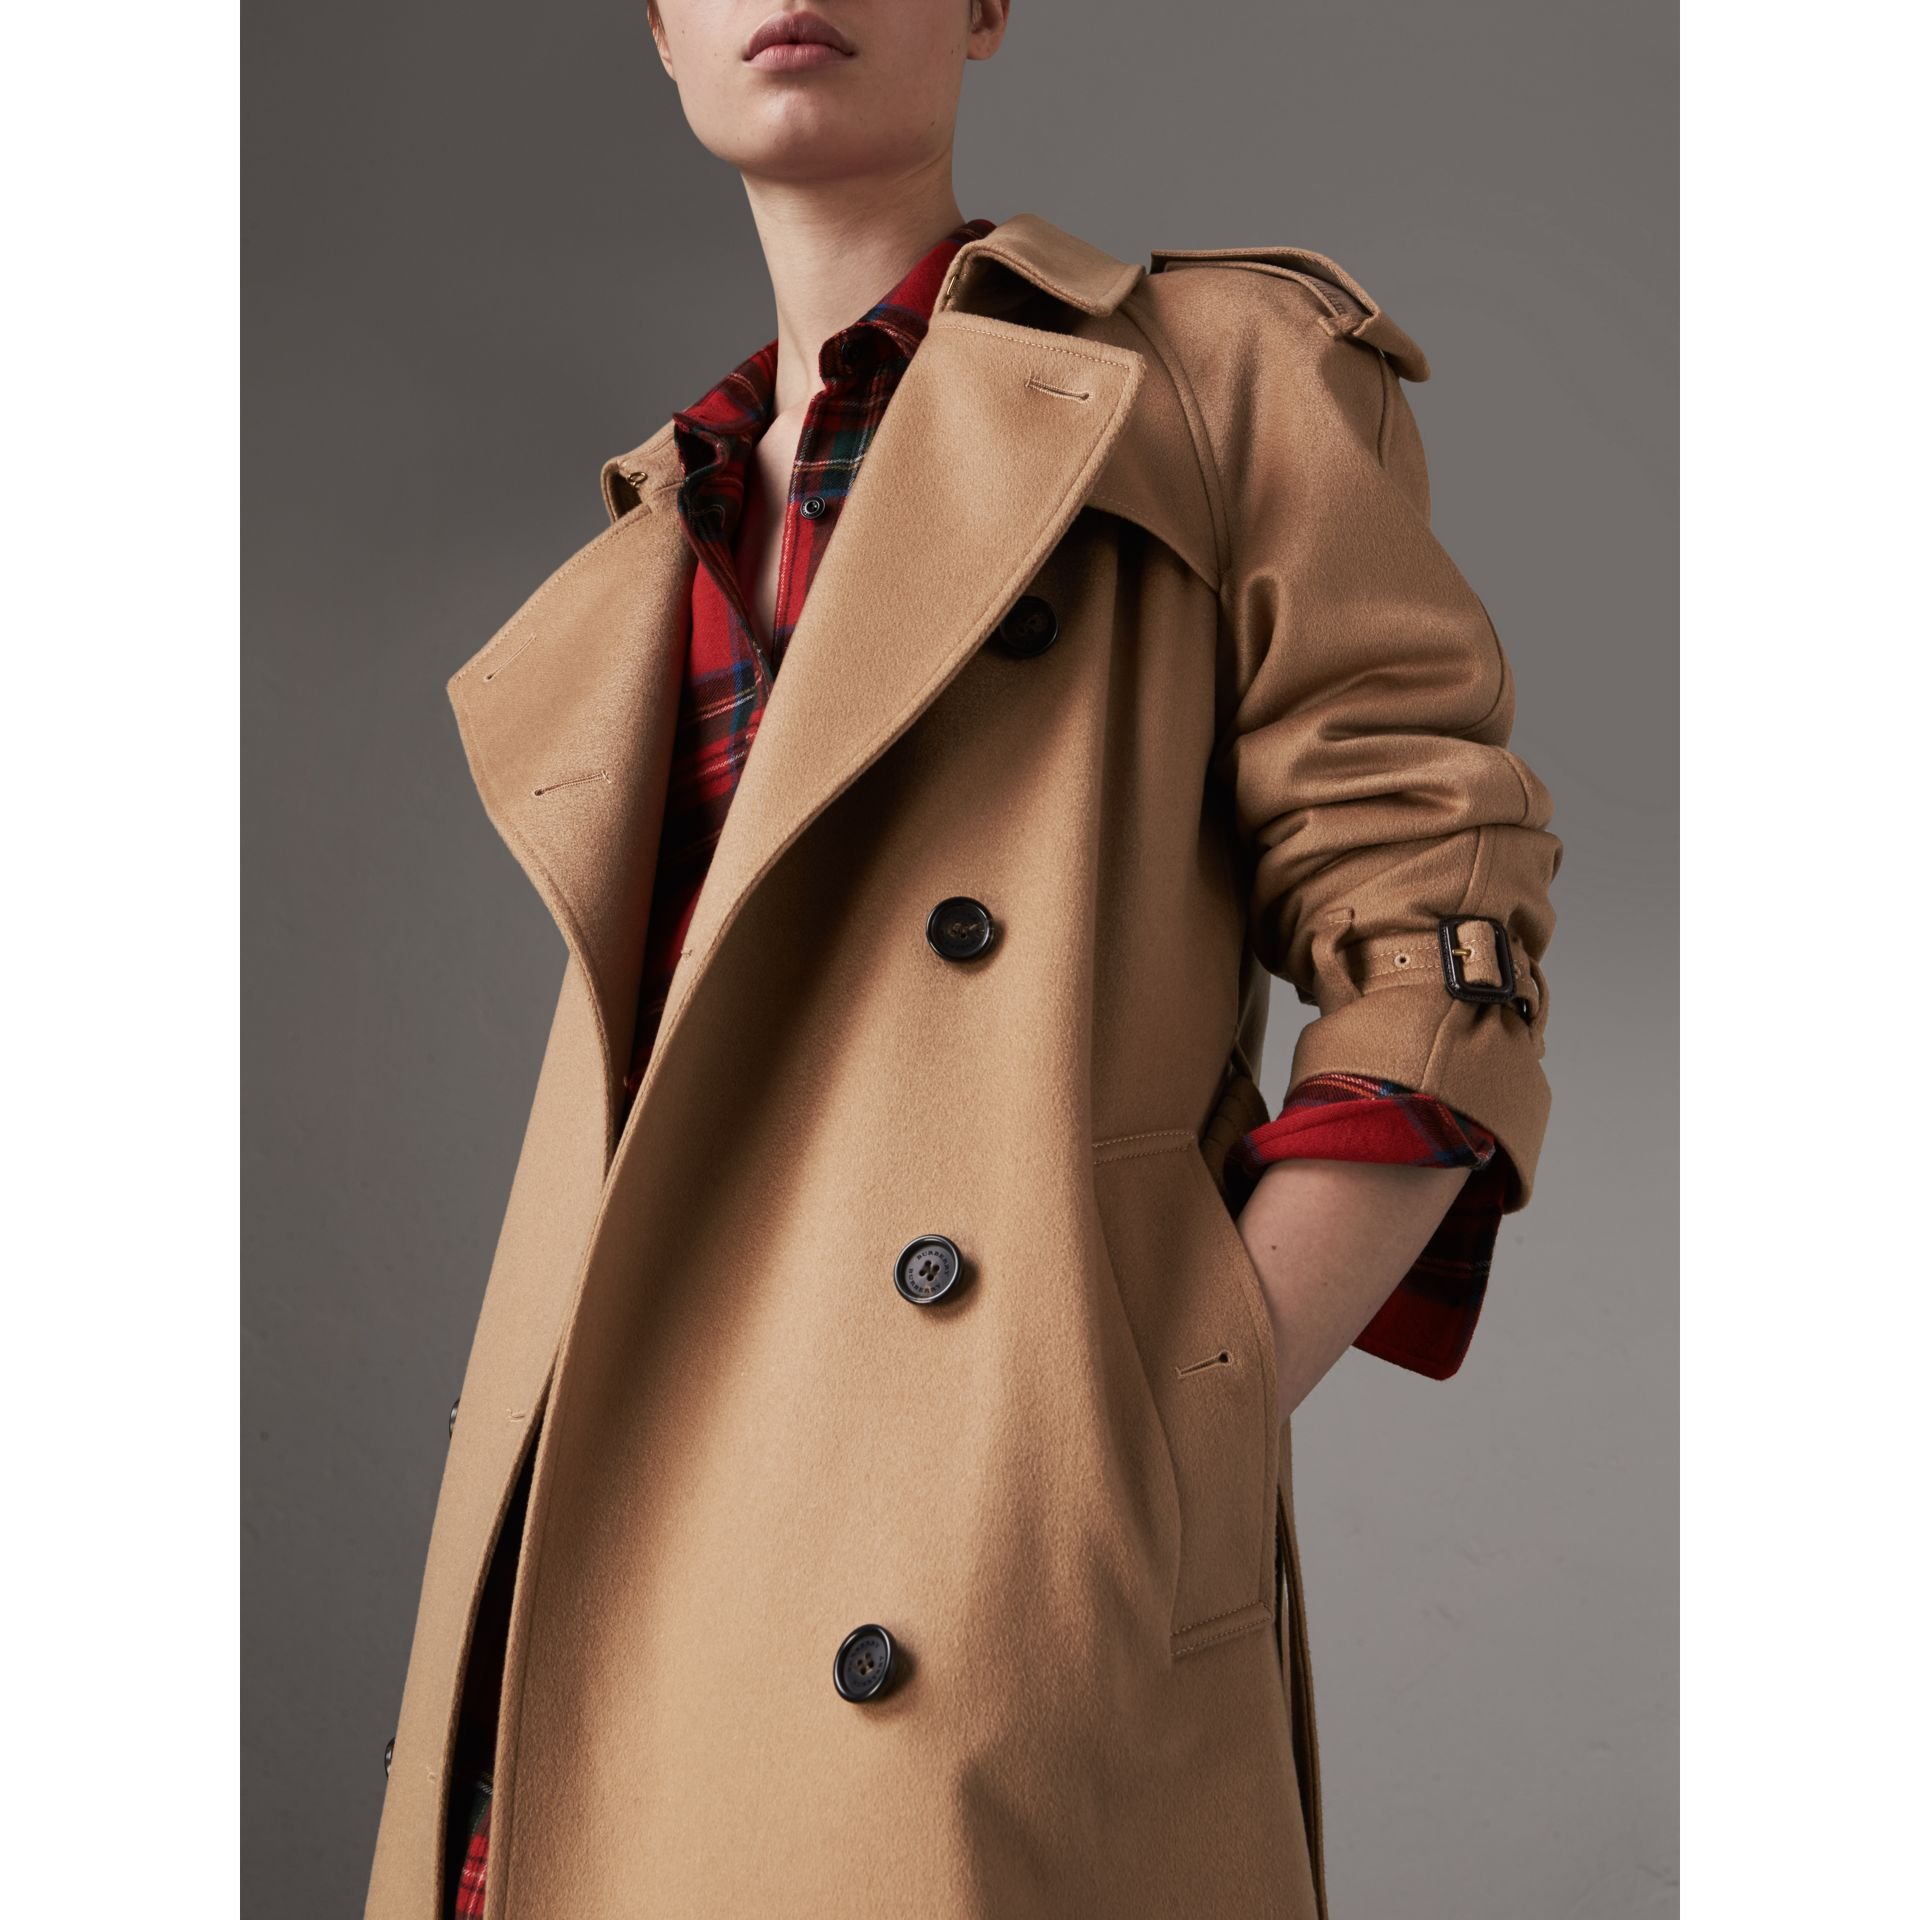 Cashmere Trench Coat in Camel - Women | Burberry Canada - gallery image 4